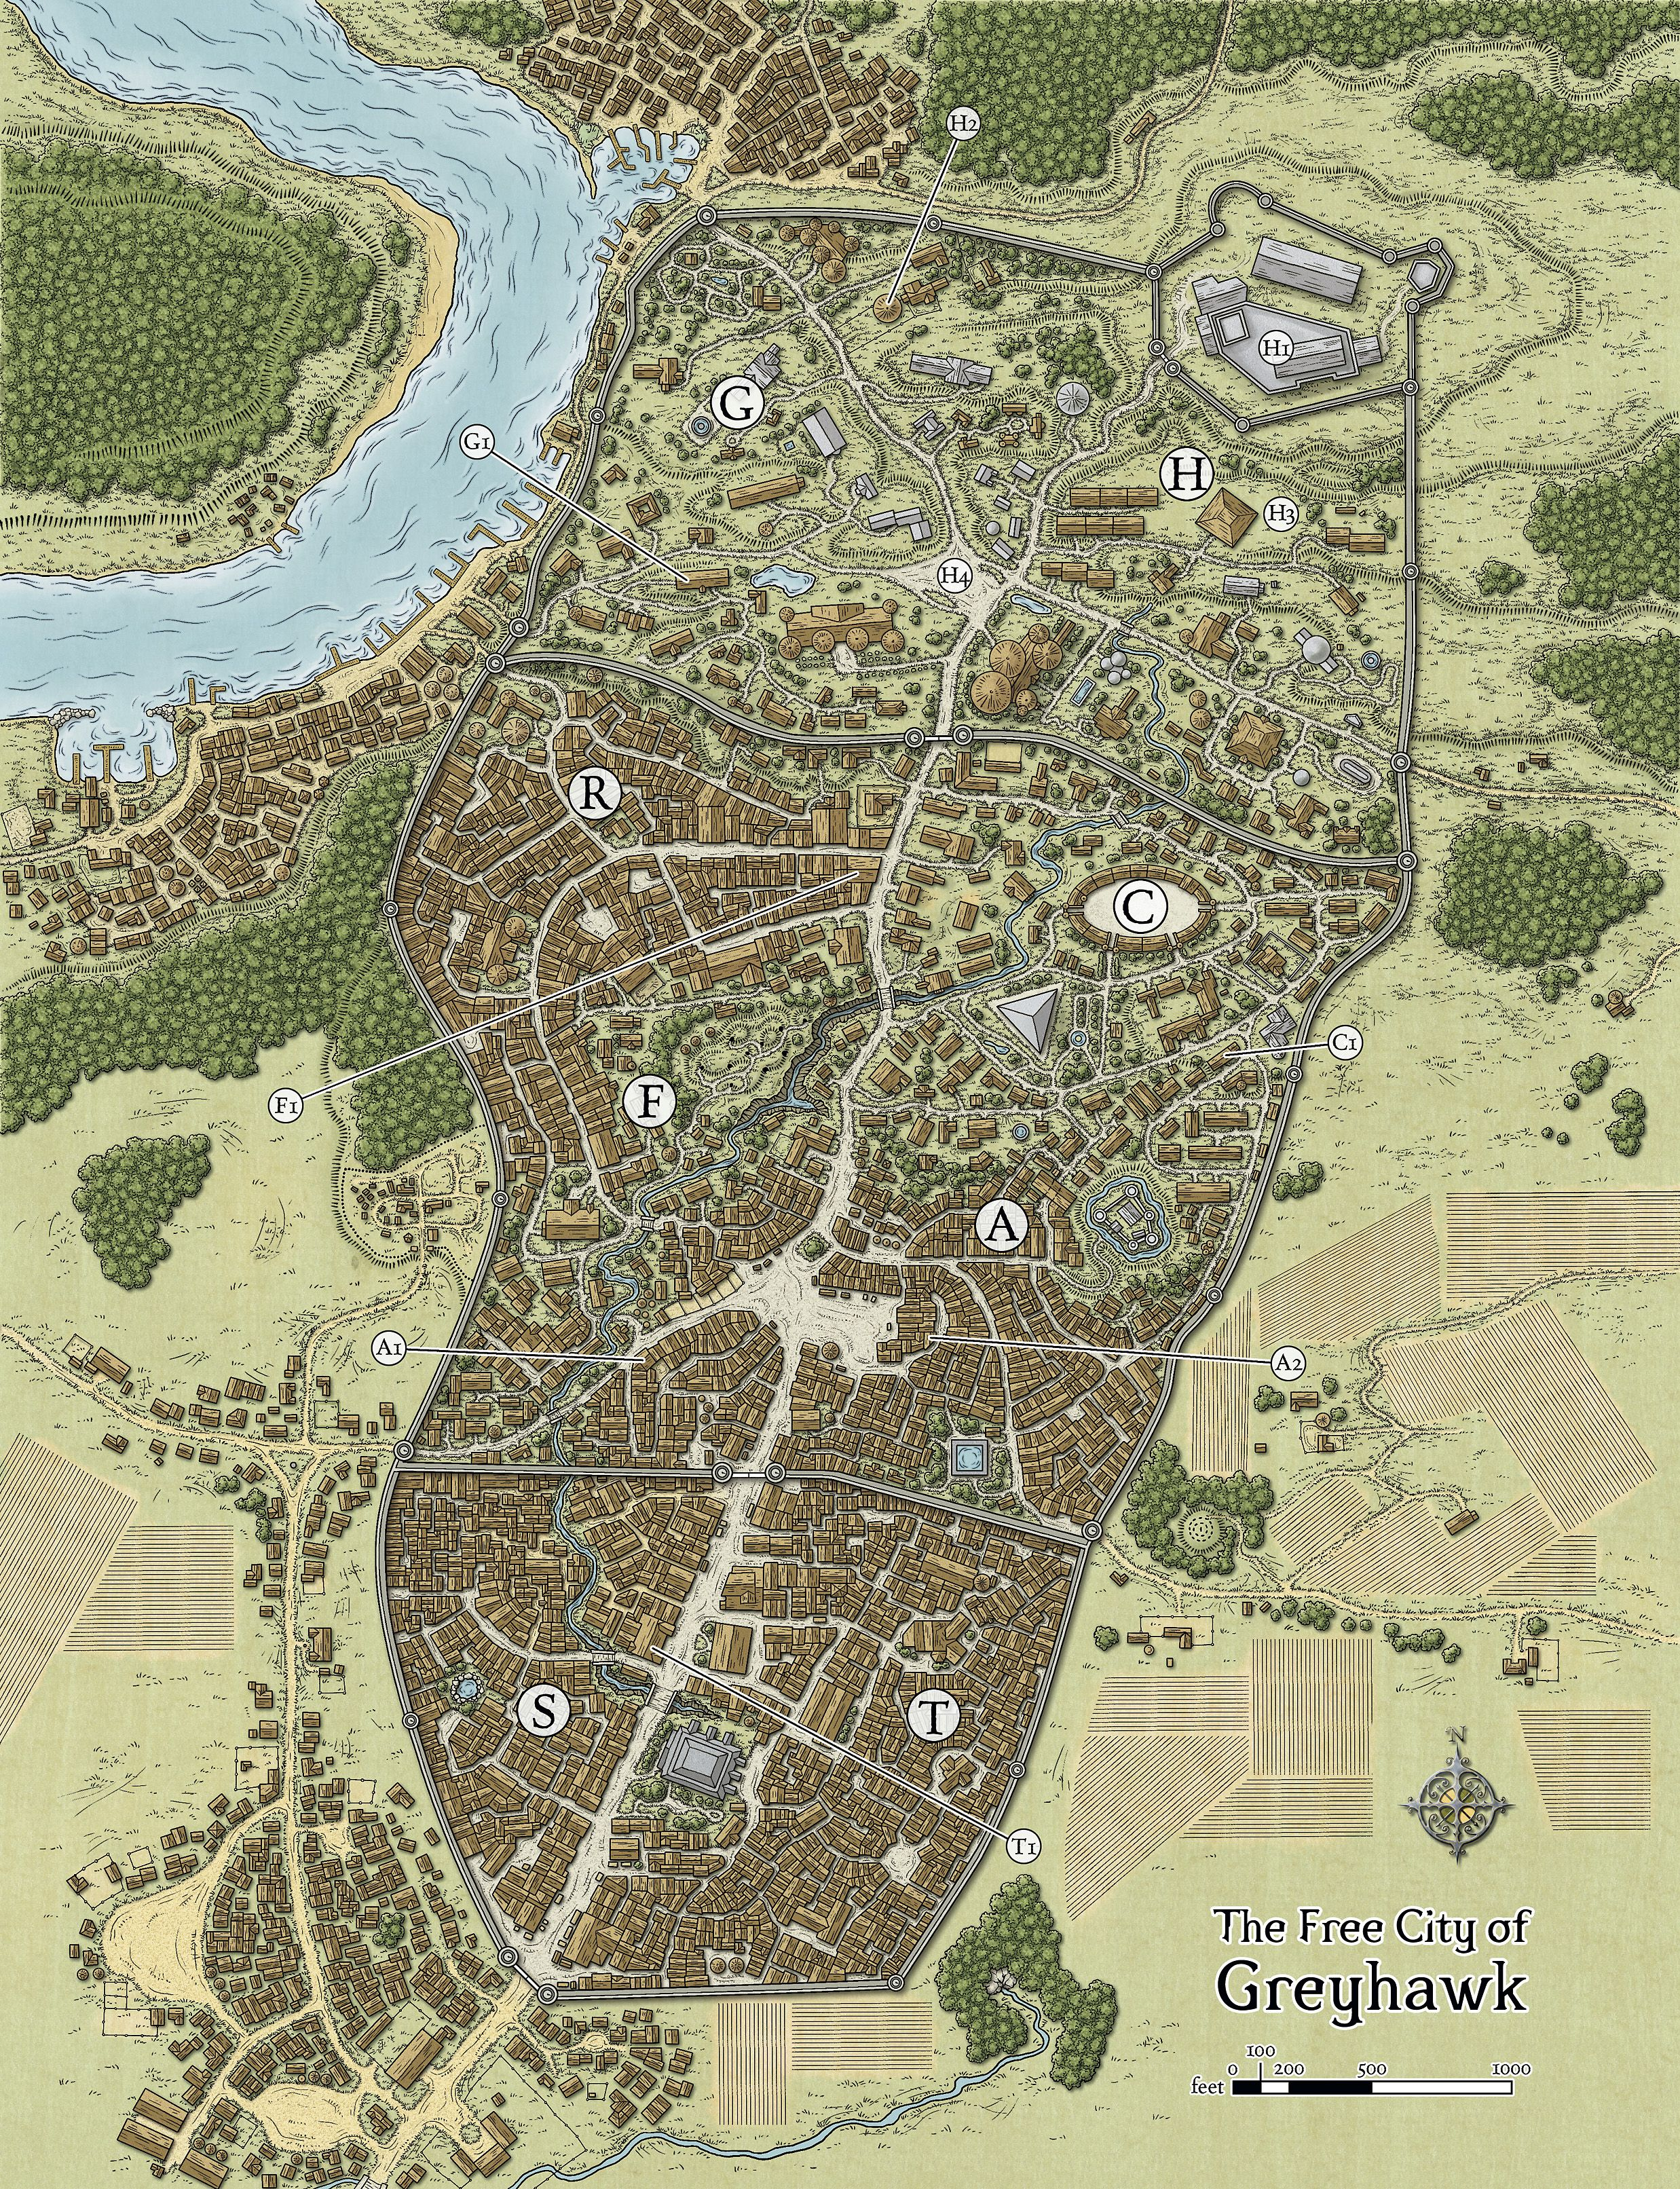 Castle greyhawk map tsrpaizo pinterest castles city and rpg free city of greyhawk gumiabroncs Image collections